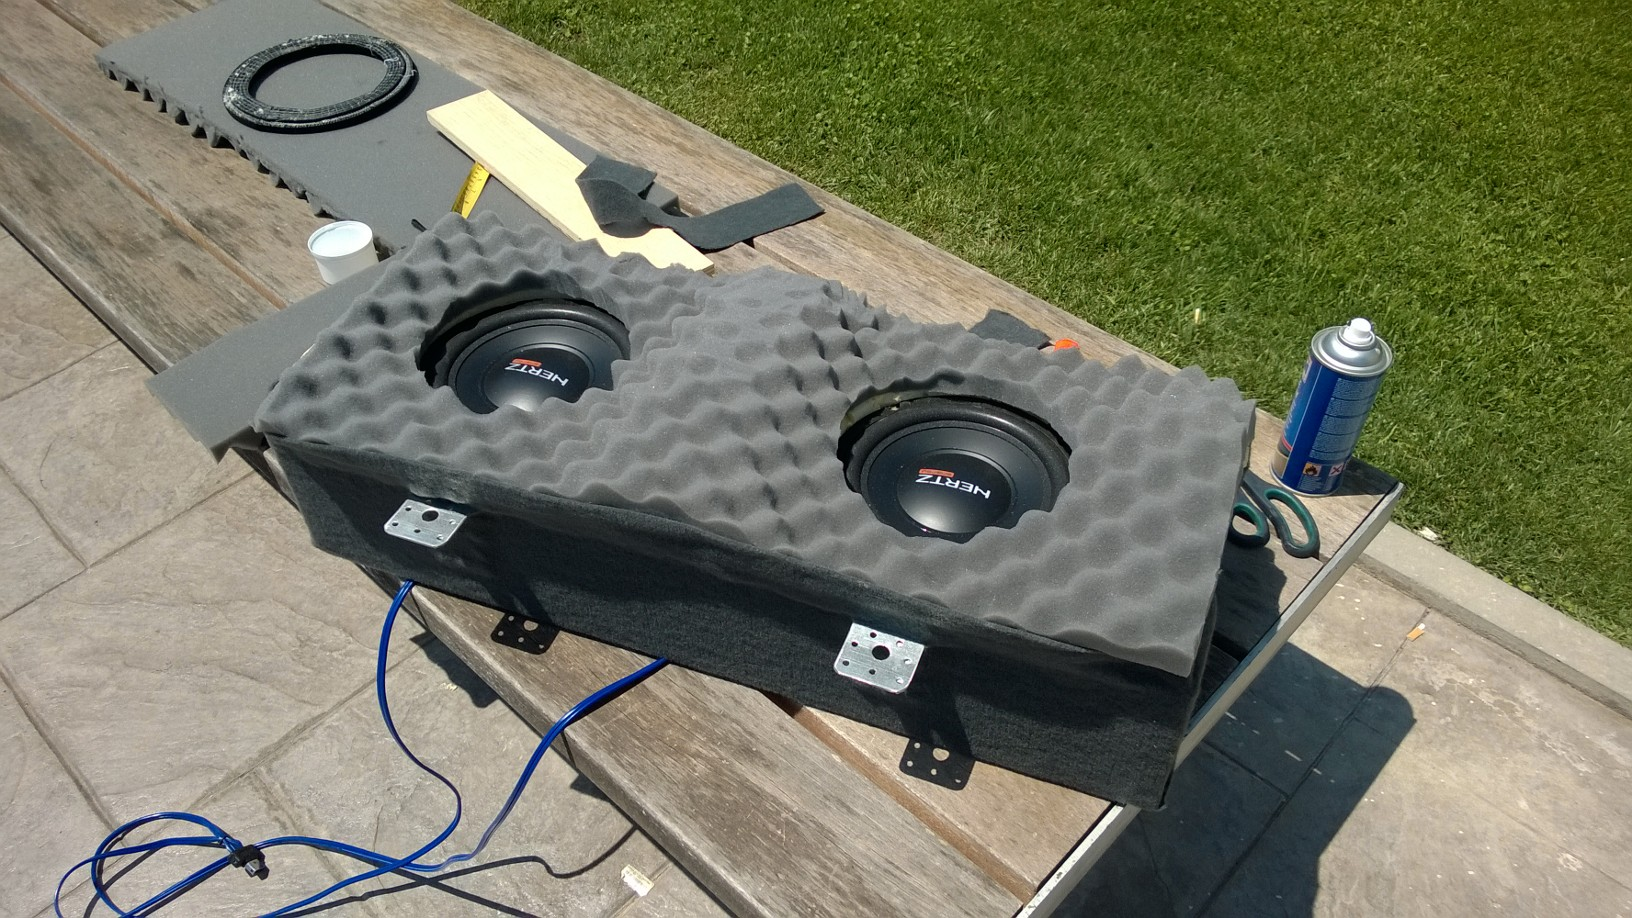 M Audio Alternatives Bmw M5 Forum And M6 Forums